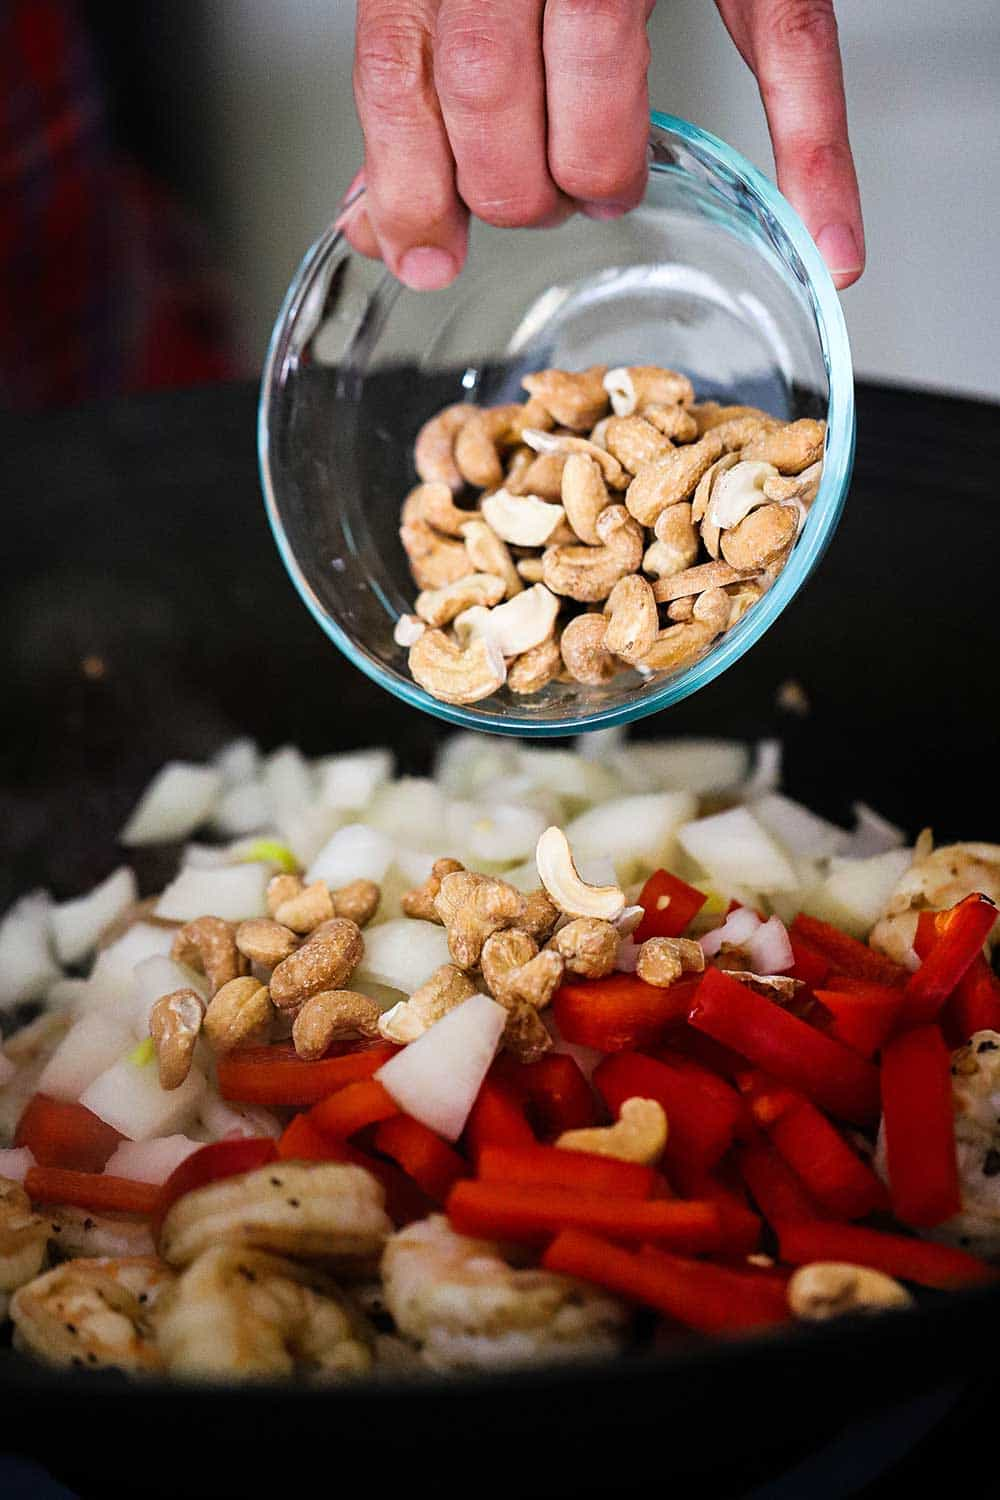 A person dumping whole roasted cashews from a small glass bowl into a wok filled with cooked shrimp and chopped onion and red bell pepper.